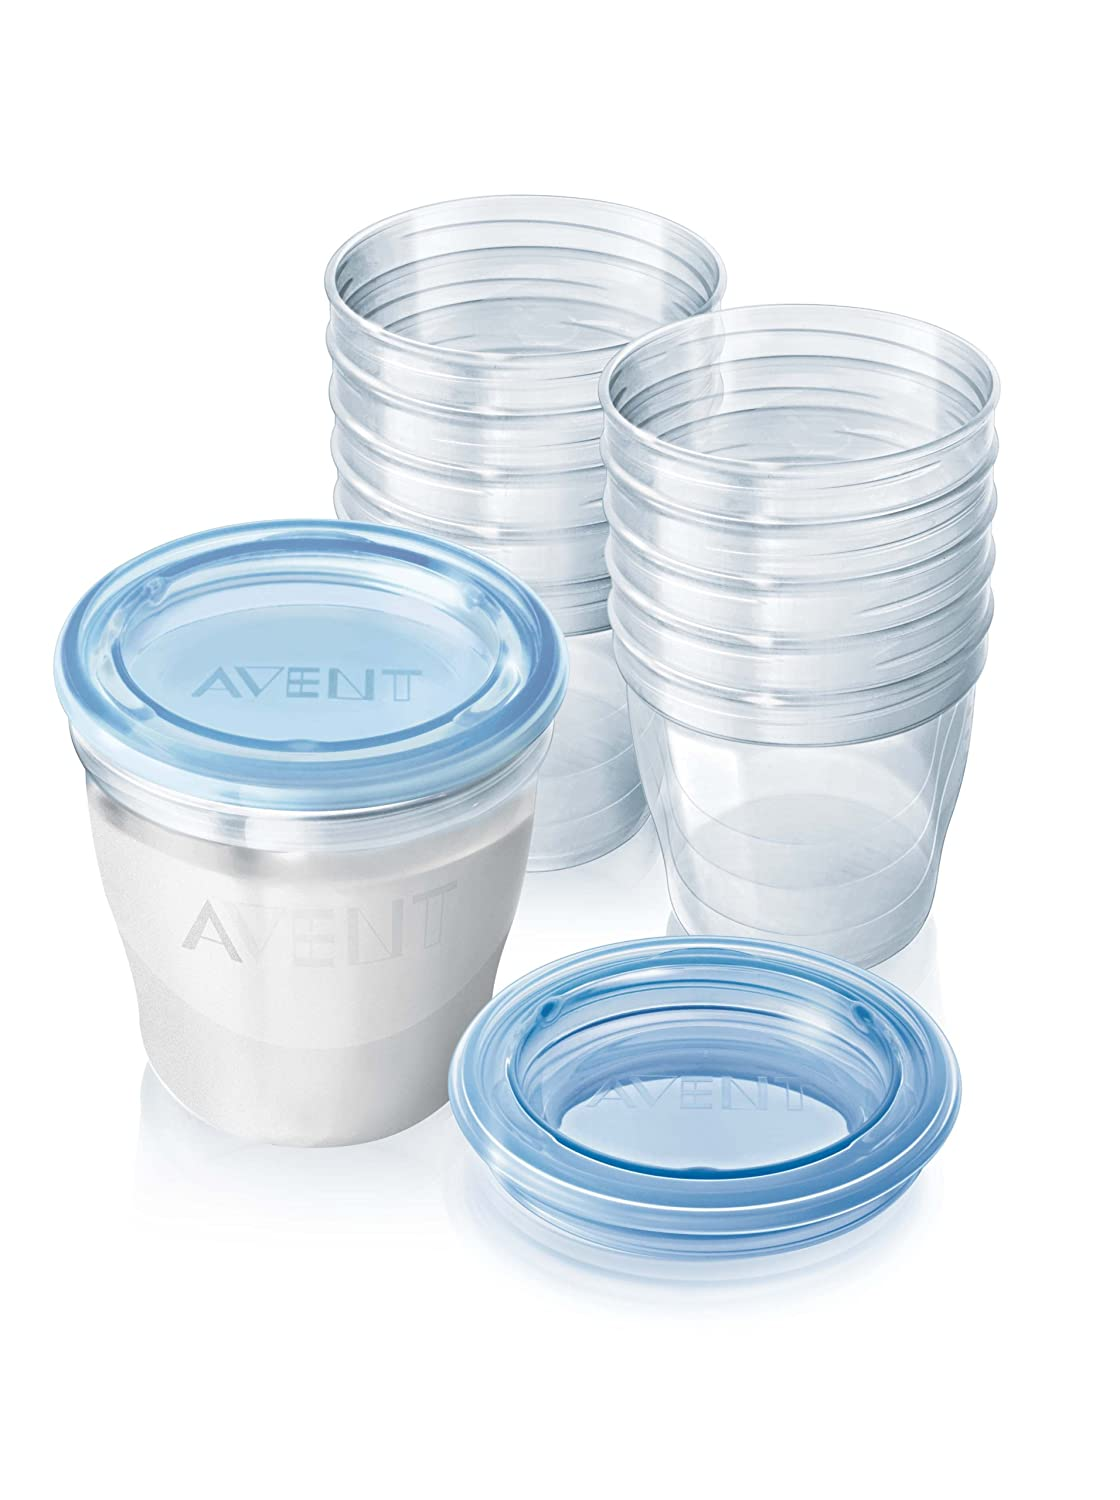 Avent-Philips Avent Via Feeding System Pp by PHILIPS SpA